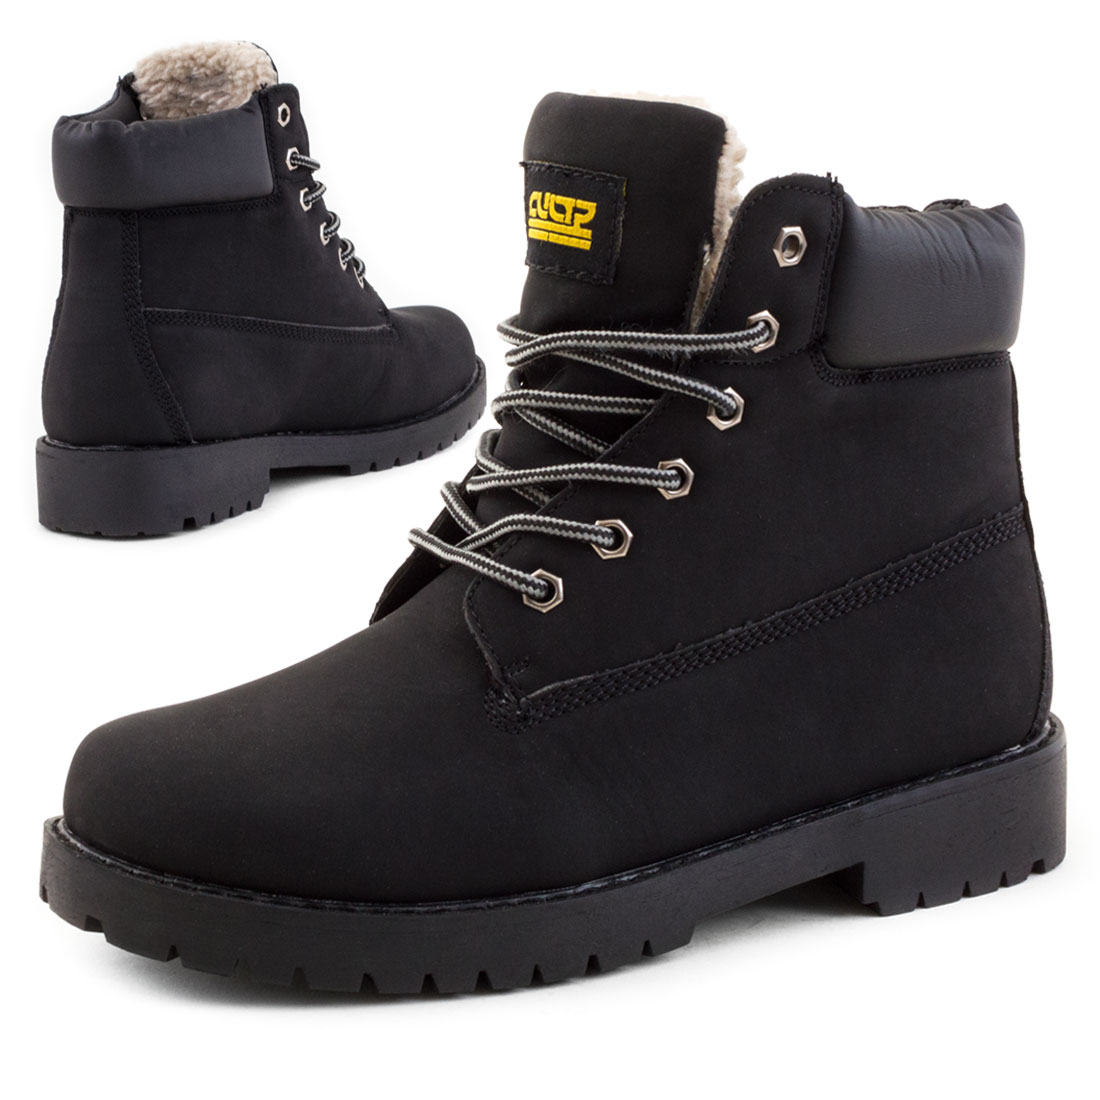 neu damen herren boots sneaker schuhe gr 36 37 38 39 40 41 42 43 44 45 ebay. Black Bedroom Furniture Sets. Home Design Ideas